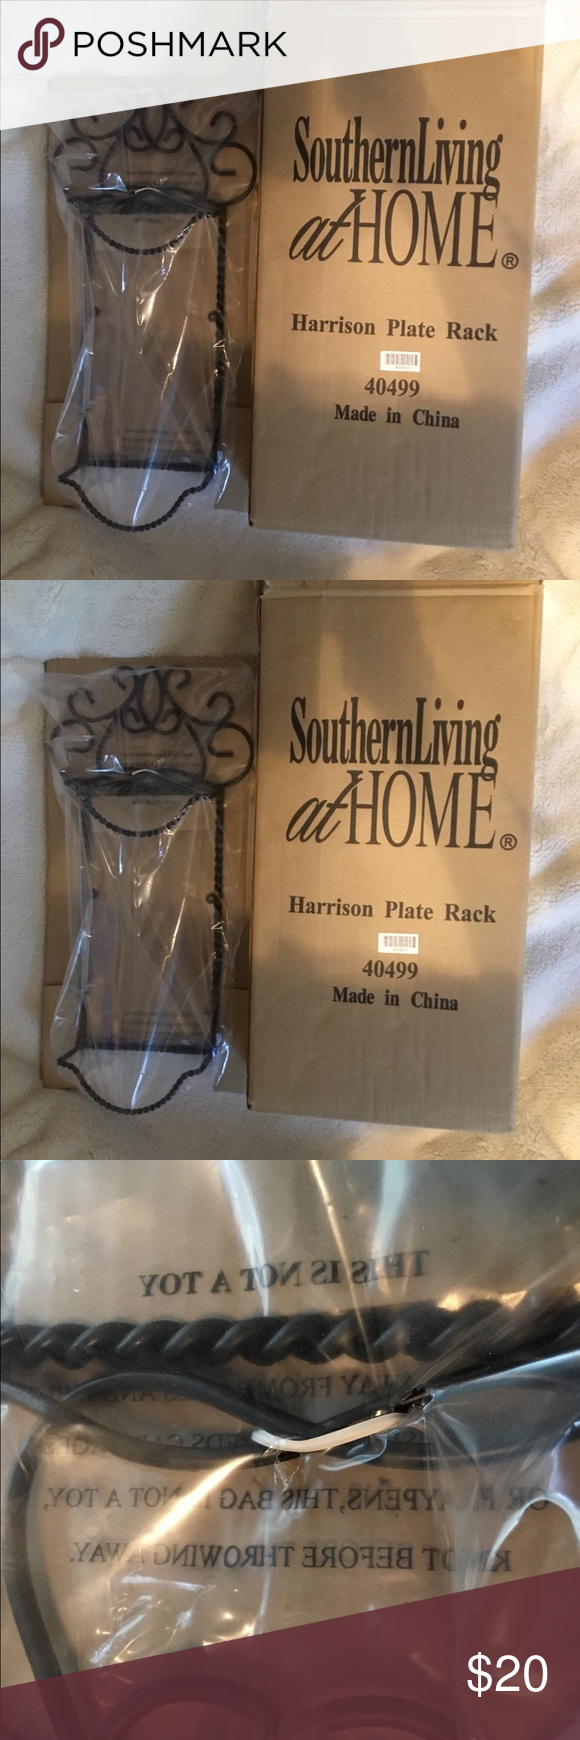 "Southern Living  Harrison plate rack. New in box. Nice Southern Living Harrison plate rack. New in box. Would make a great gift for Christmas, birthday, etc. Measurements: 33"" Long, 9 1/2"" wide. Black wrought iron. Southern Living at Home Wall Art Display Shelves #plateracks"